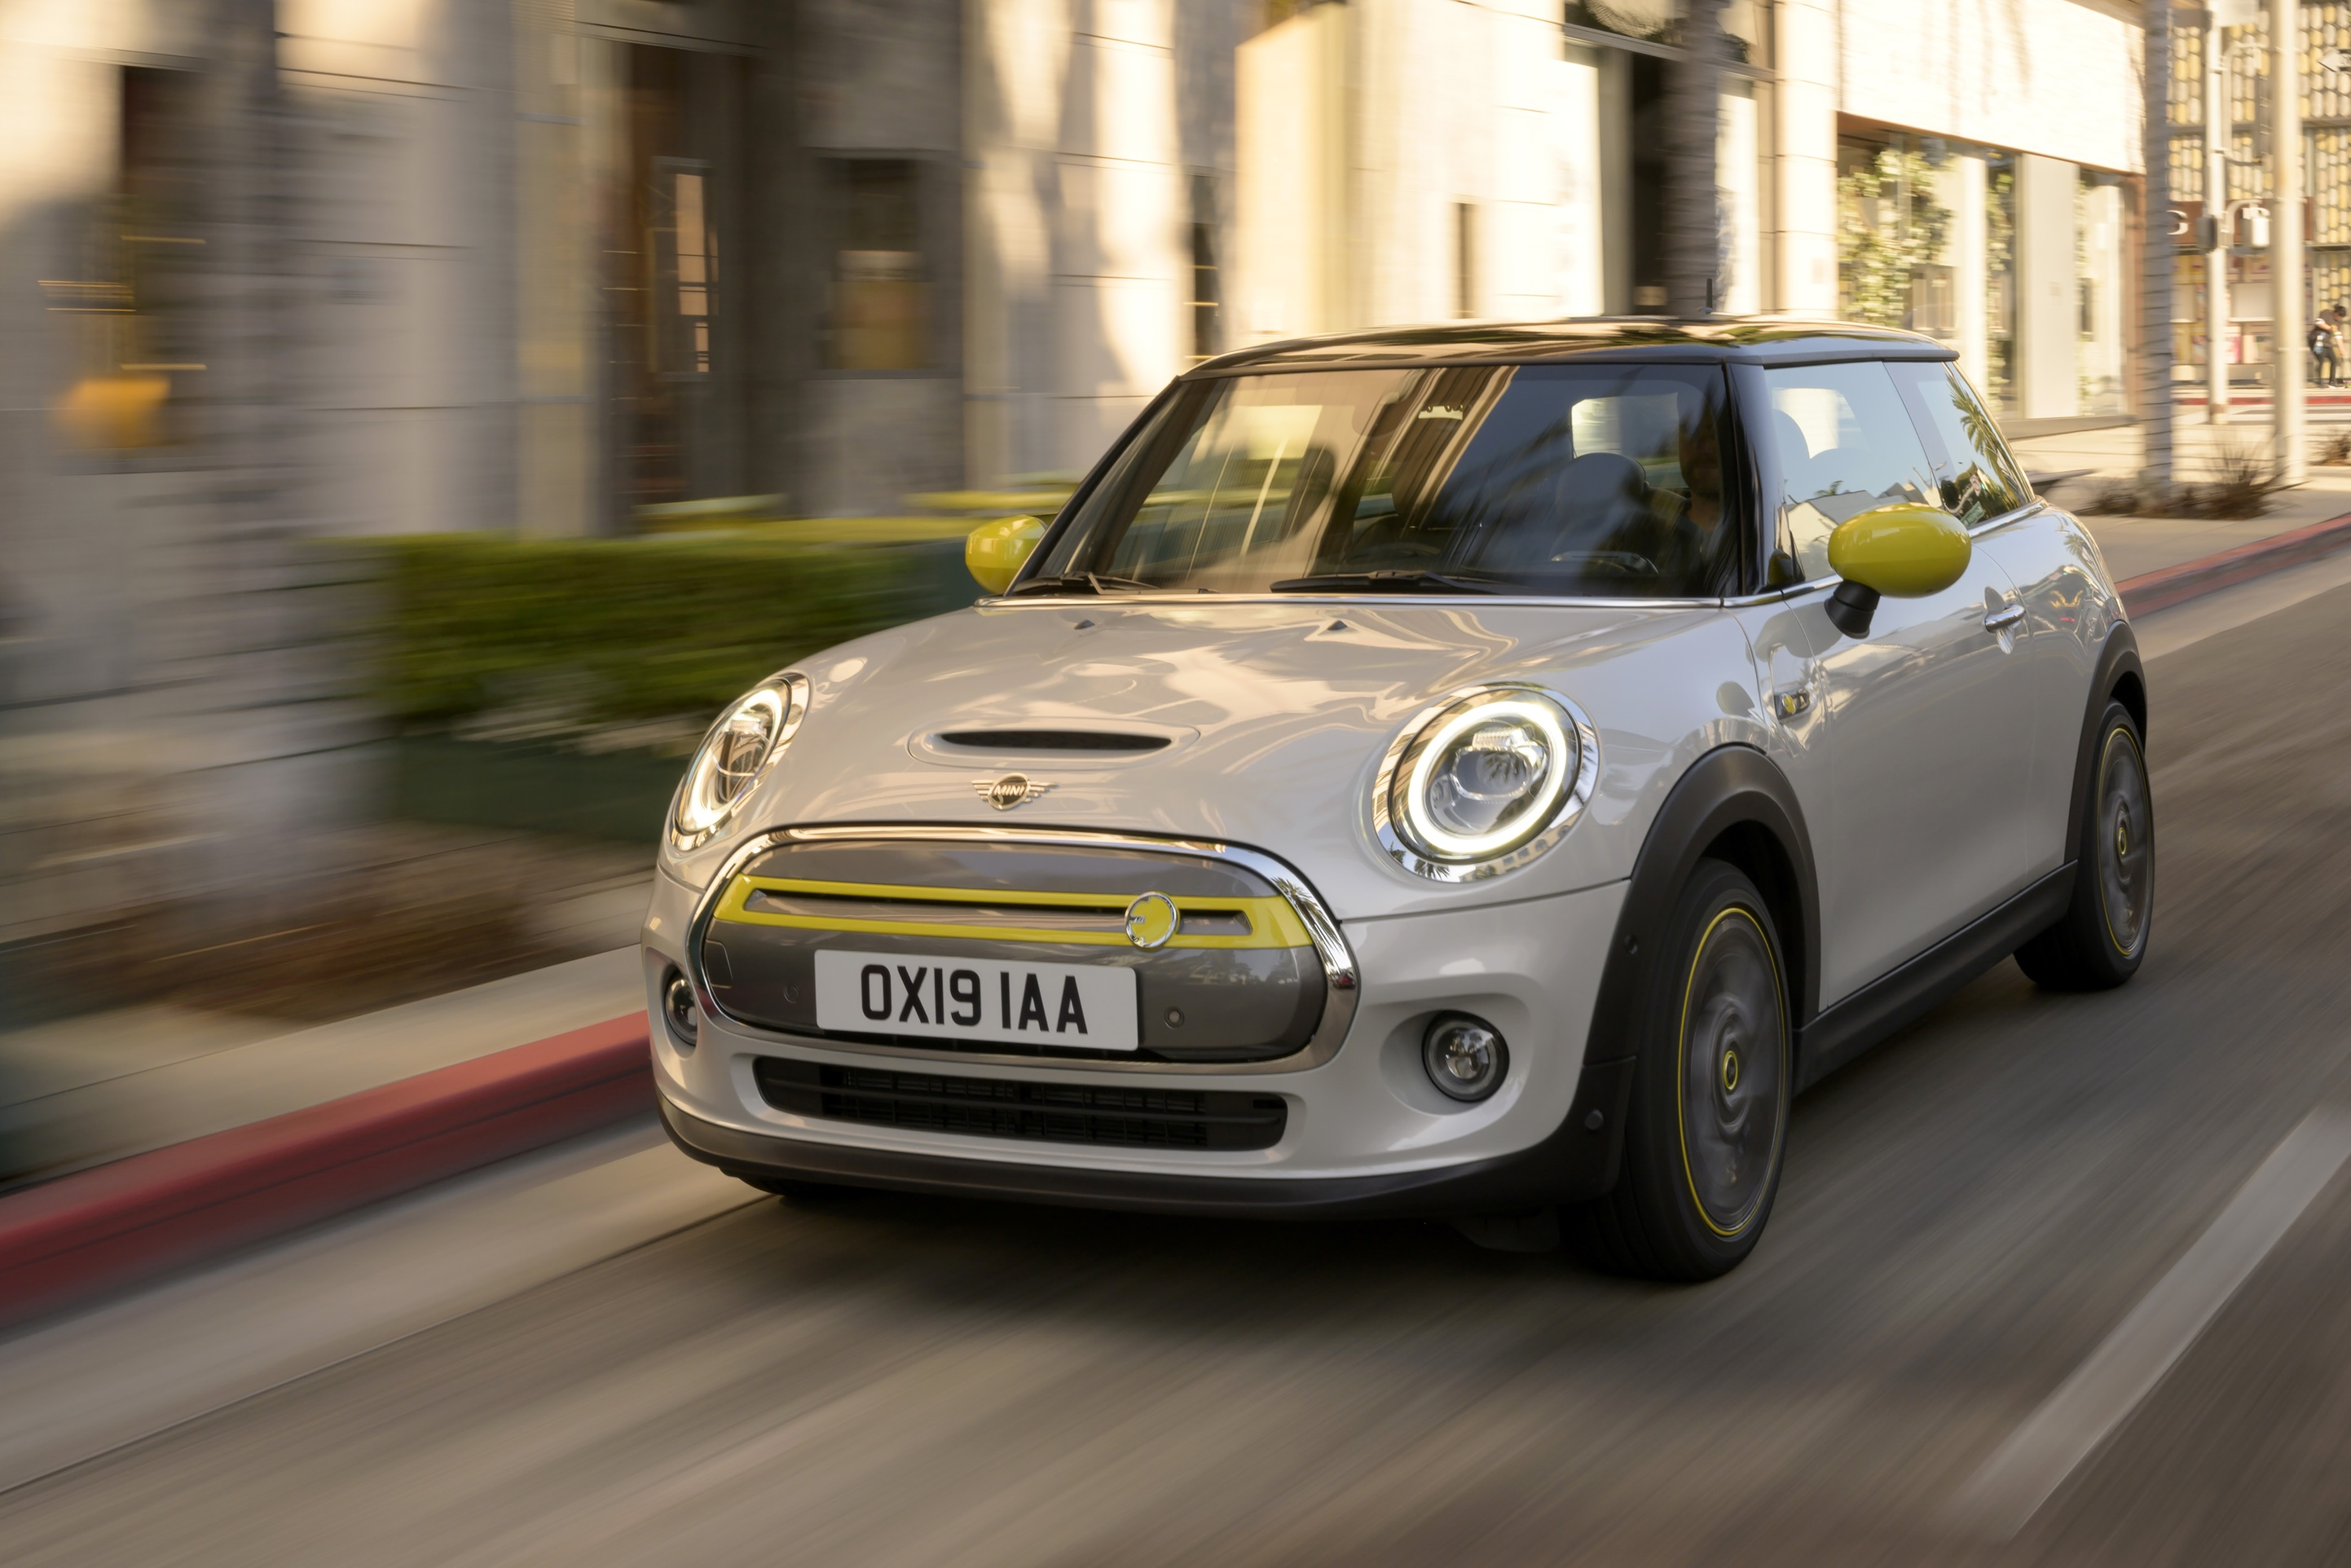 The first all-electric Mini will be available in September, starting at around €35,000